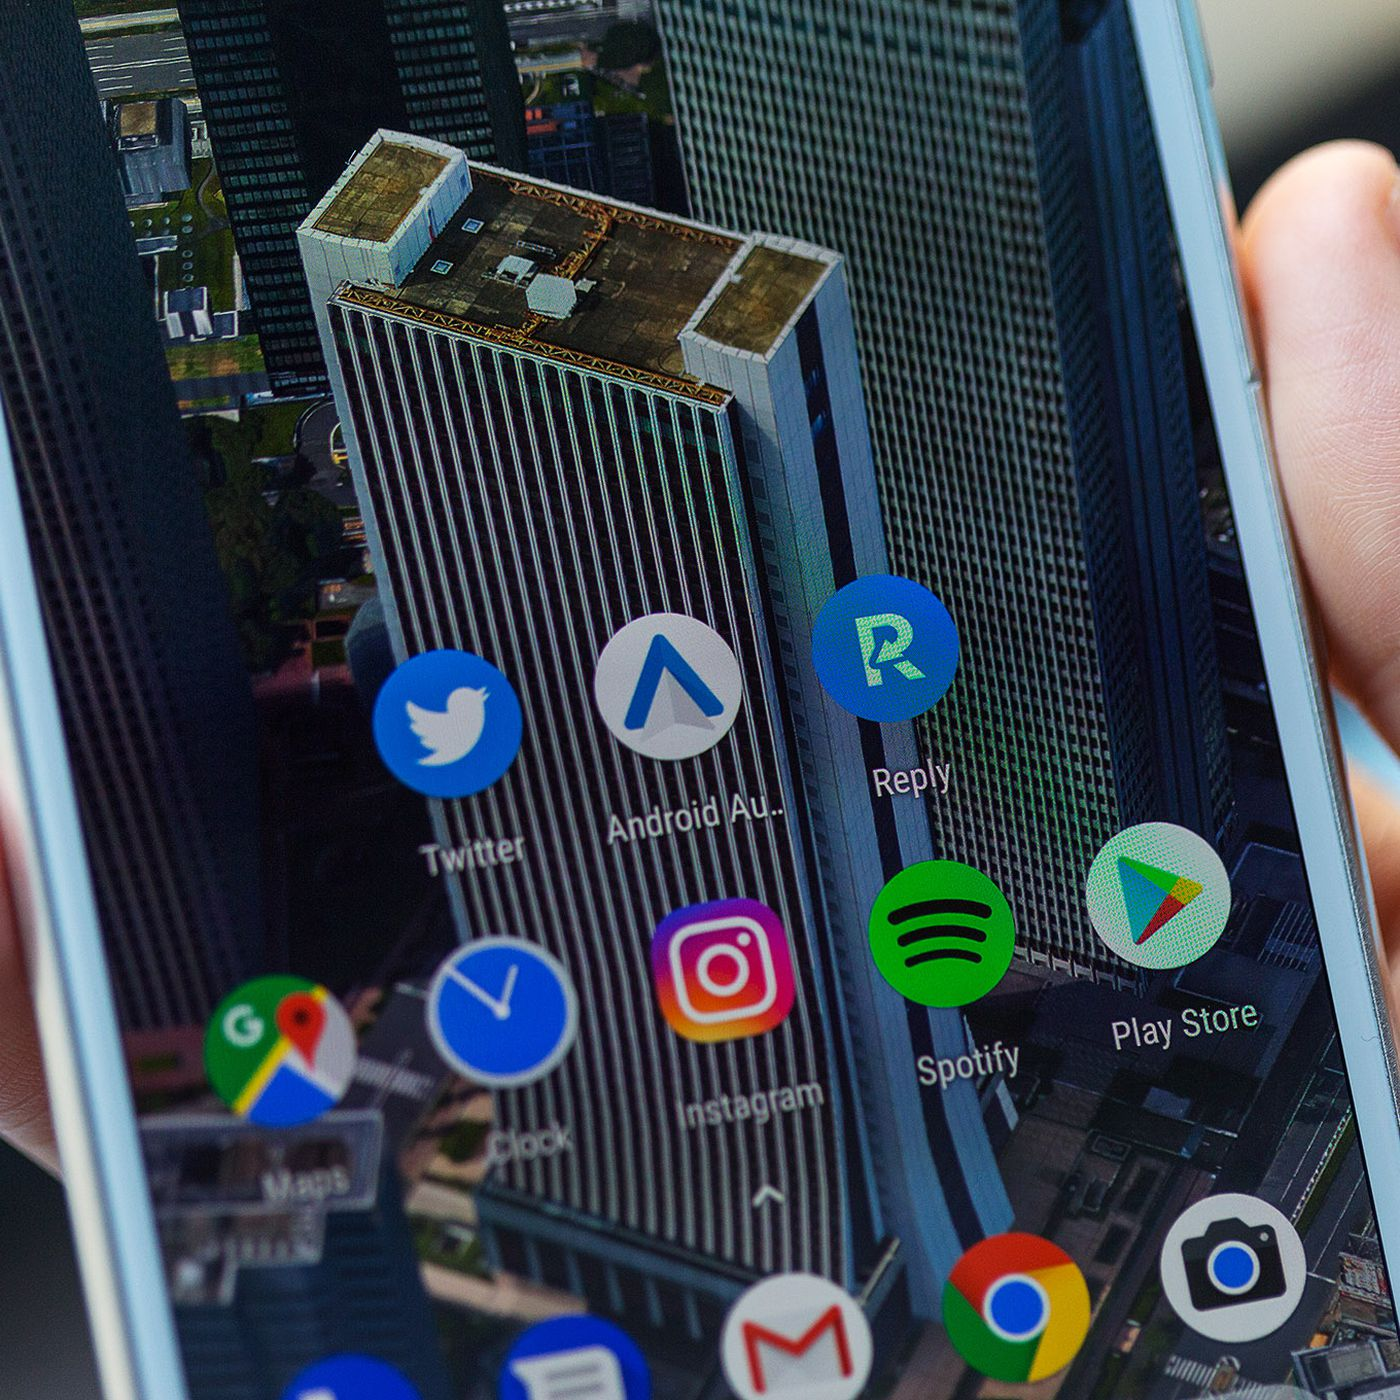 Google is blocking uncertified devices from running Google apps